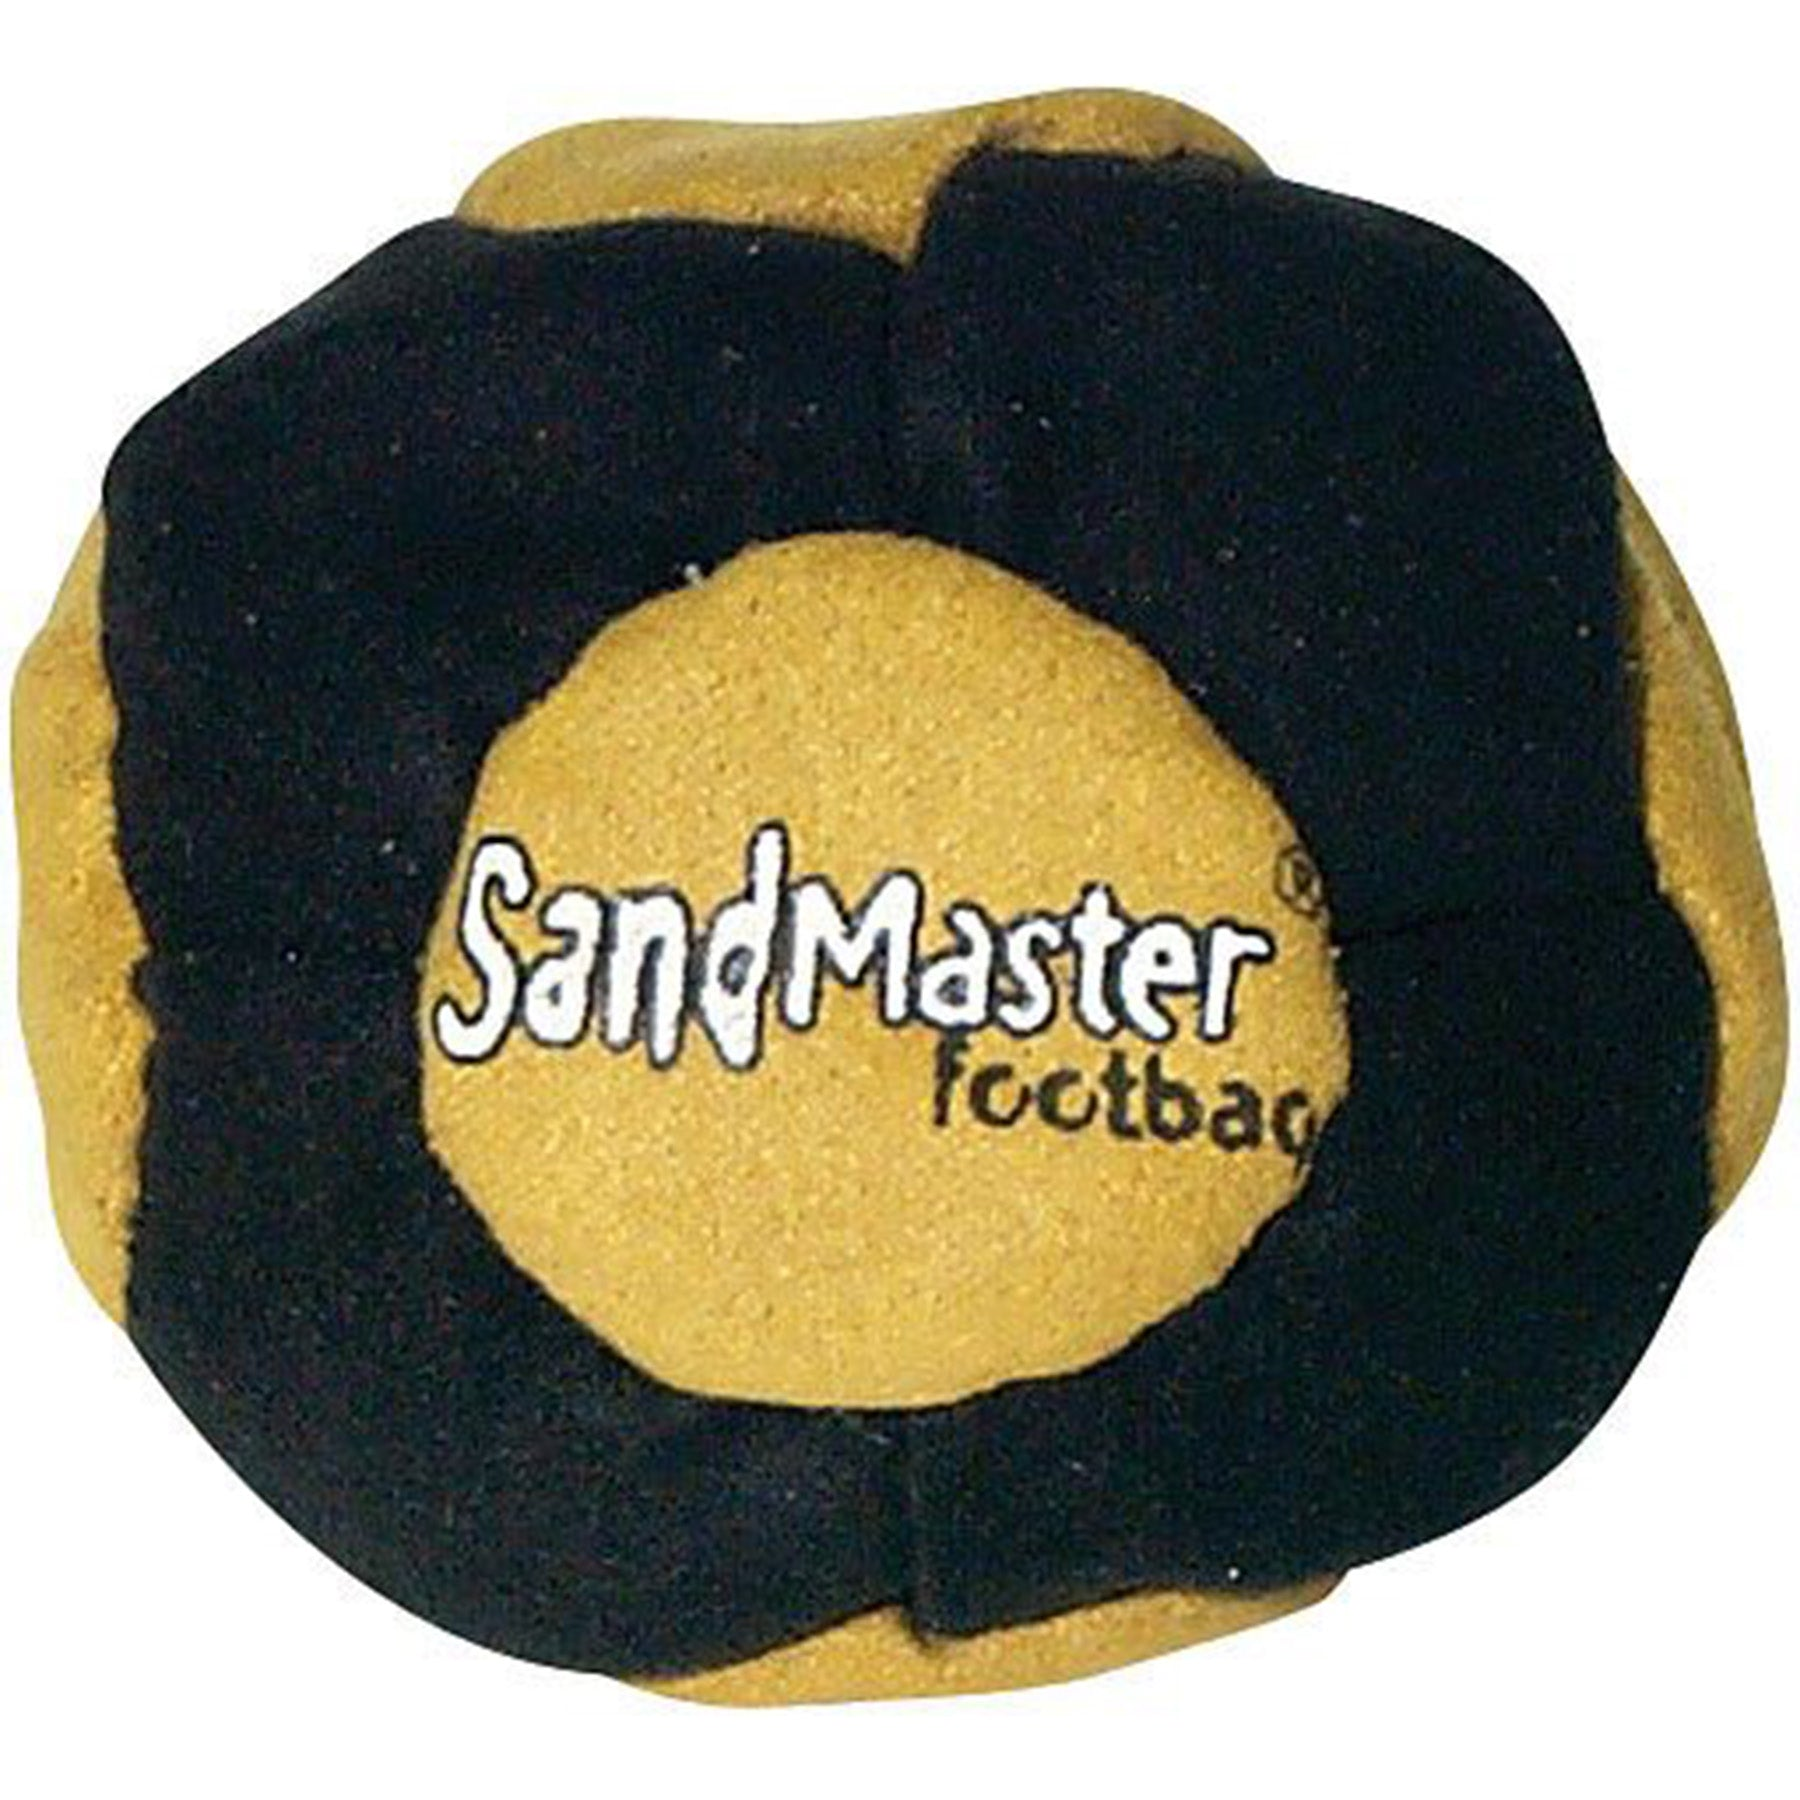 sandmaster 14-panel synthetic suede footbag (hacky sack)